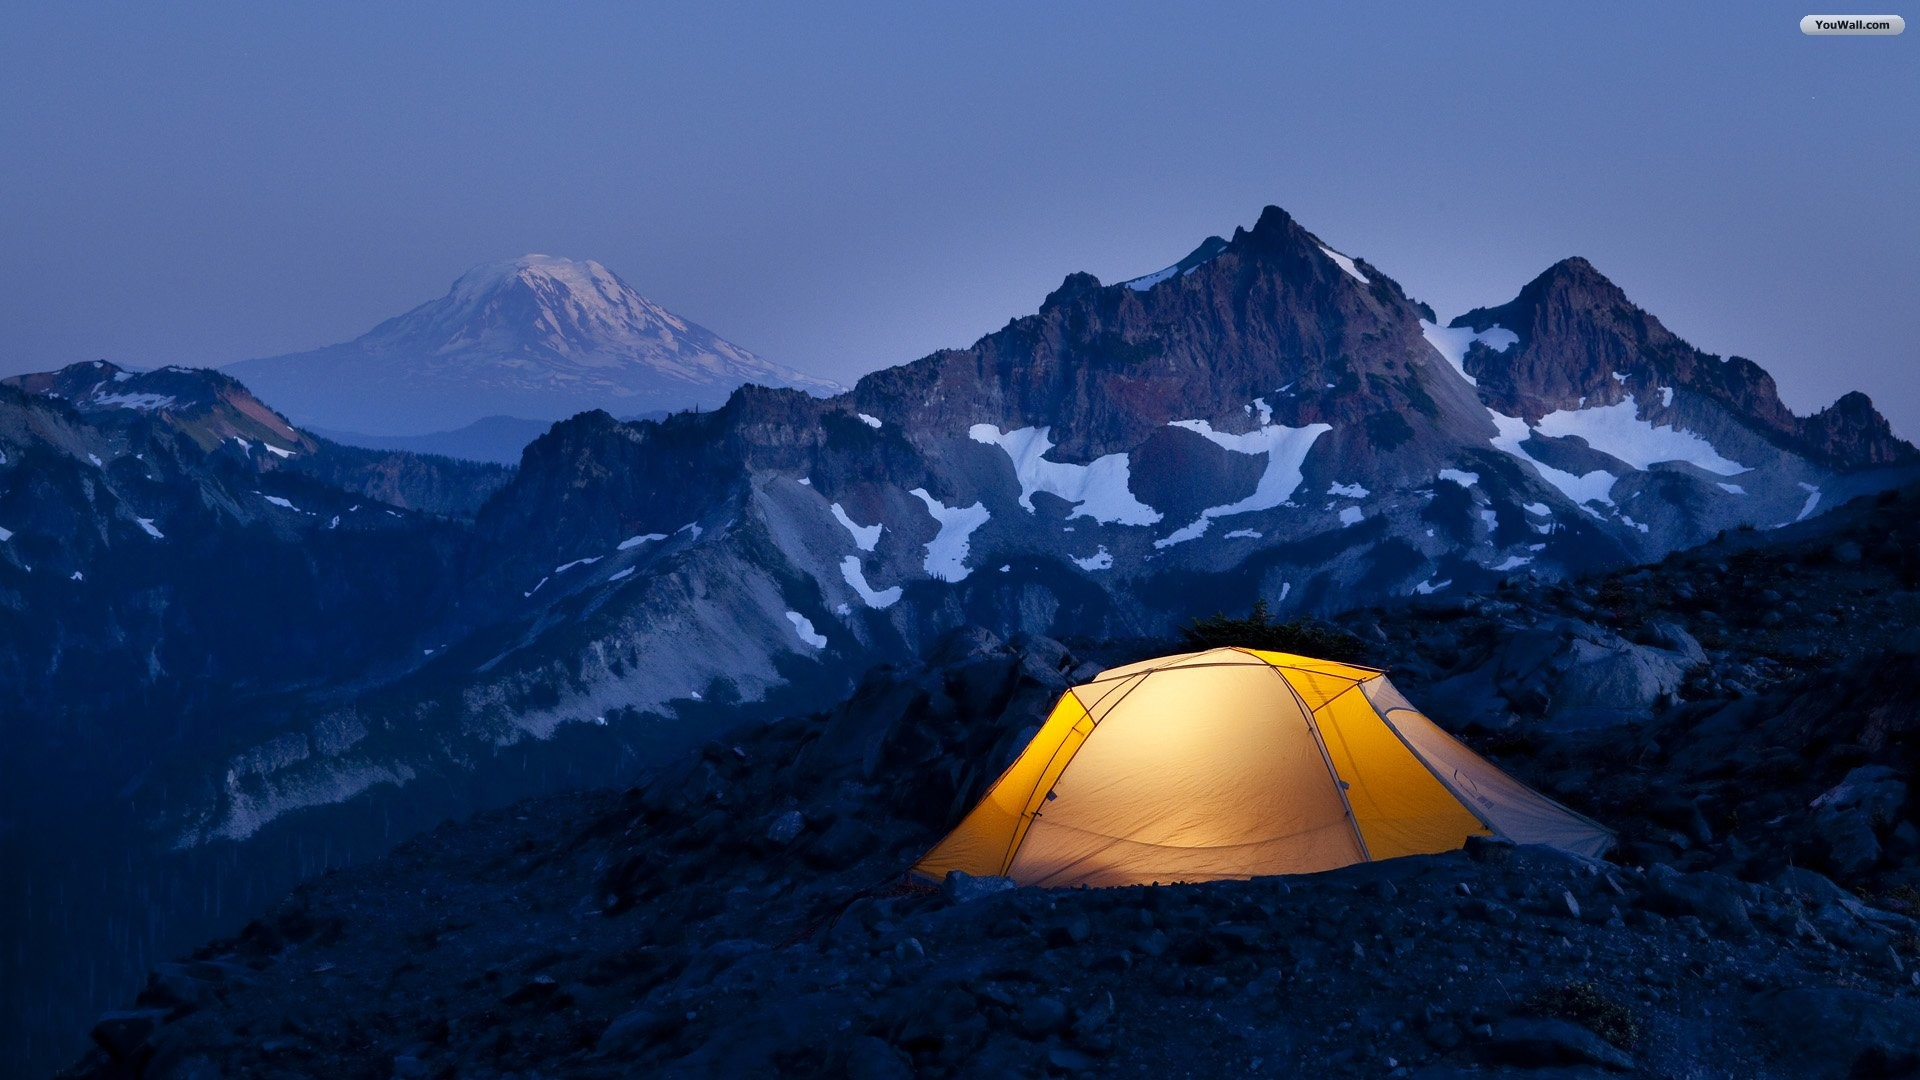 1920x1080 Camping Wallpaper - wallpaper,wallpapers,free wallpaper,photo,desktop .